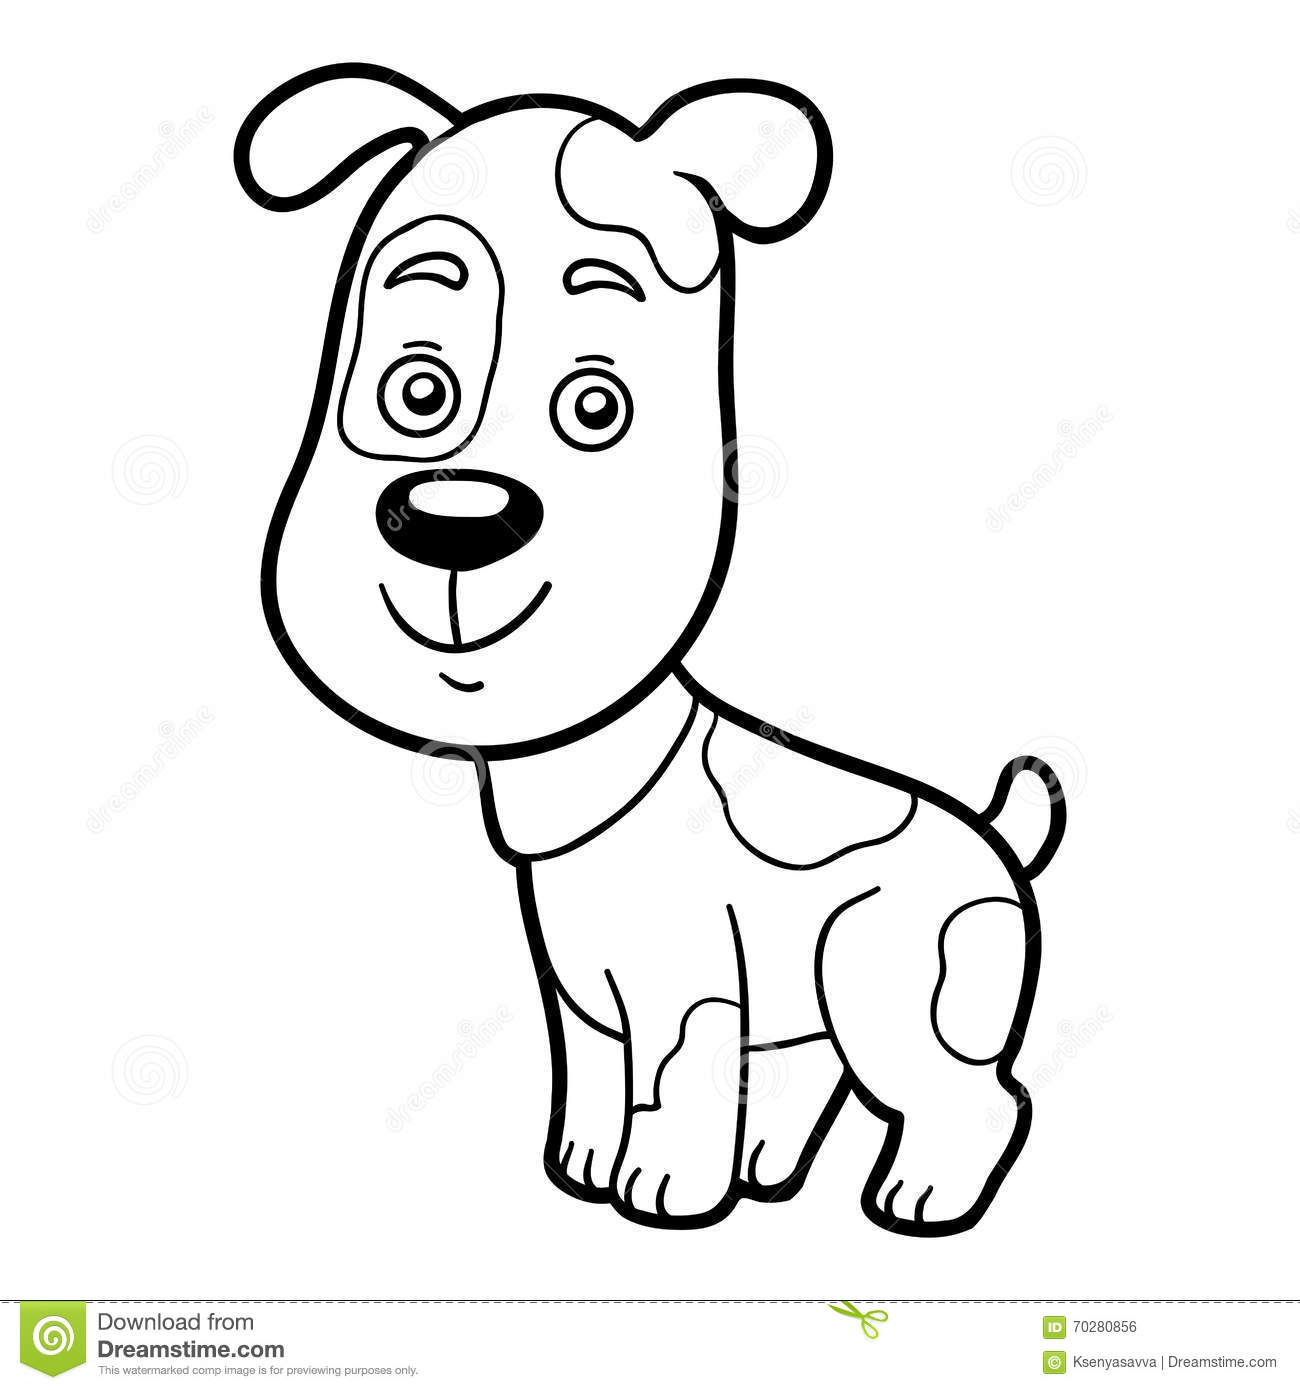 Coloring Book, Coloring Page (dog) Stock Vector - Illustration of ...